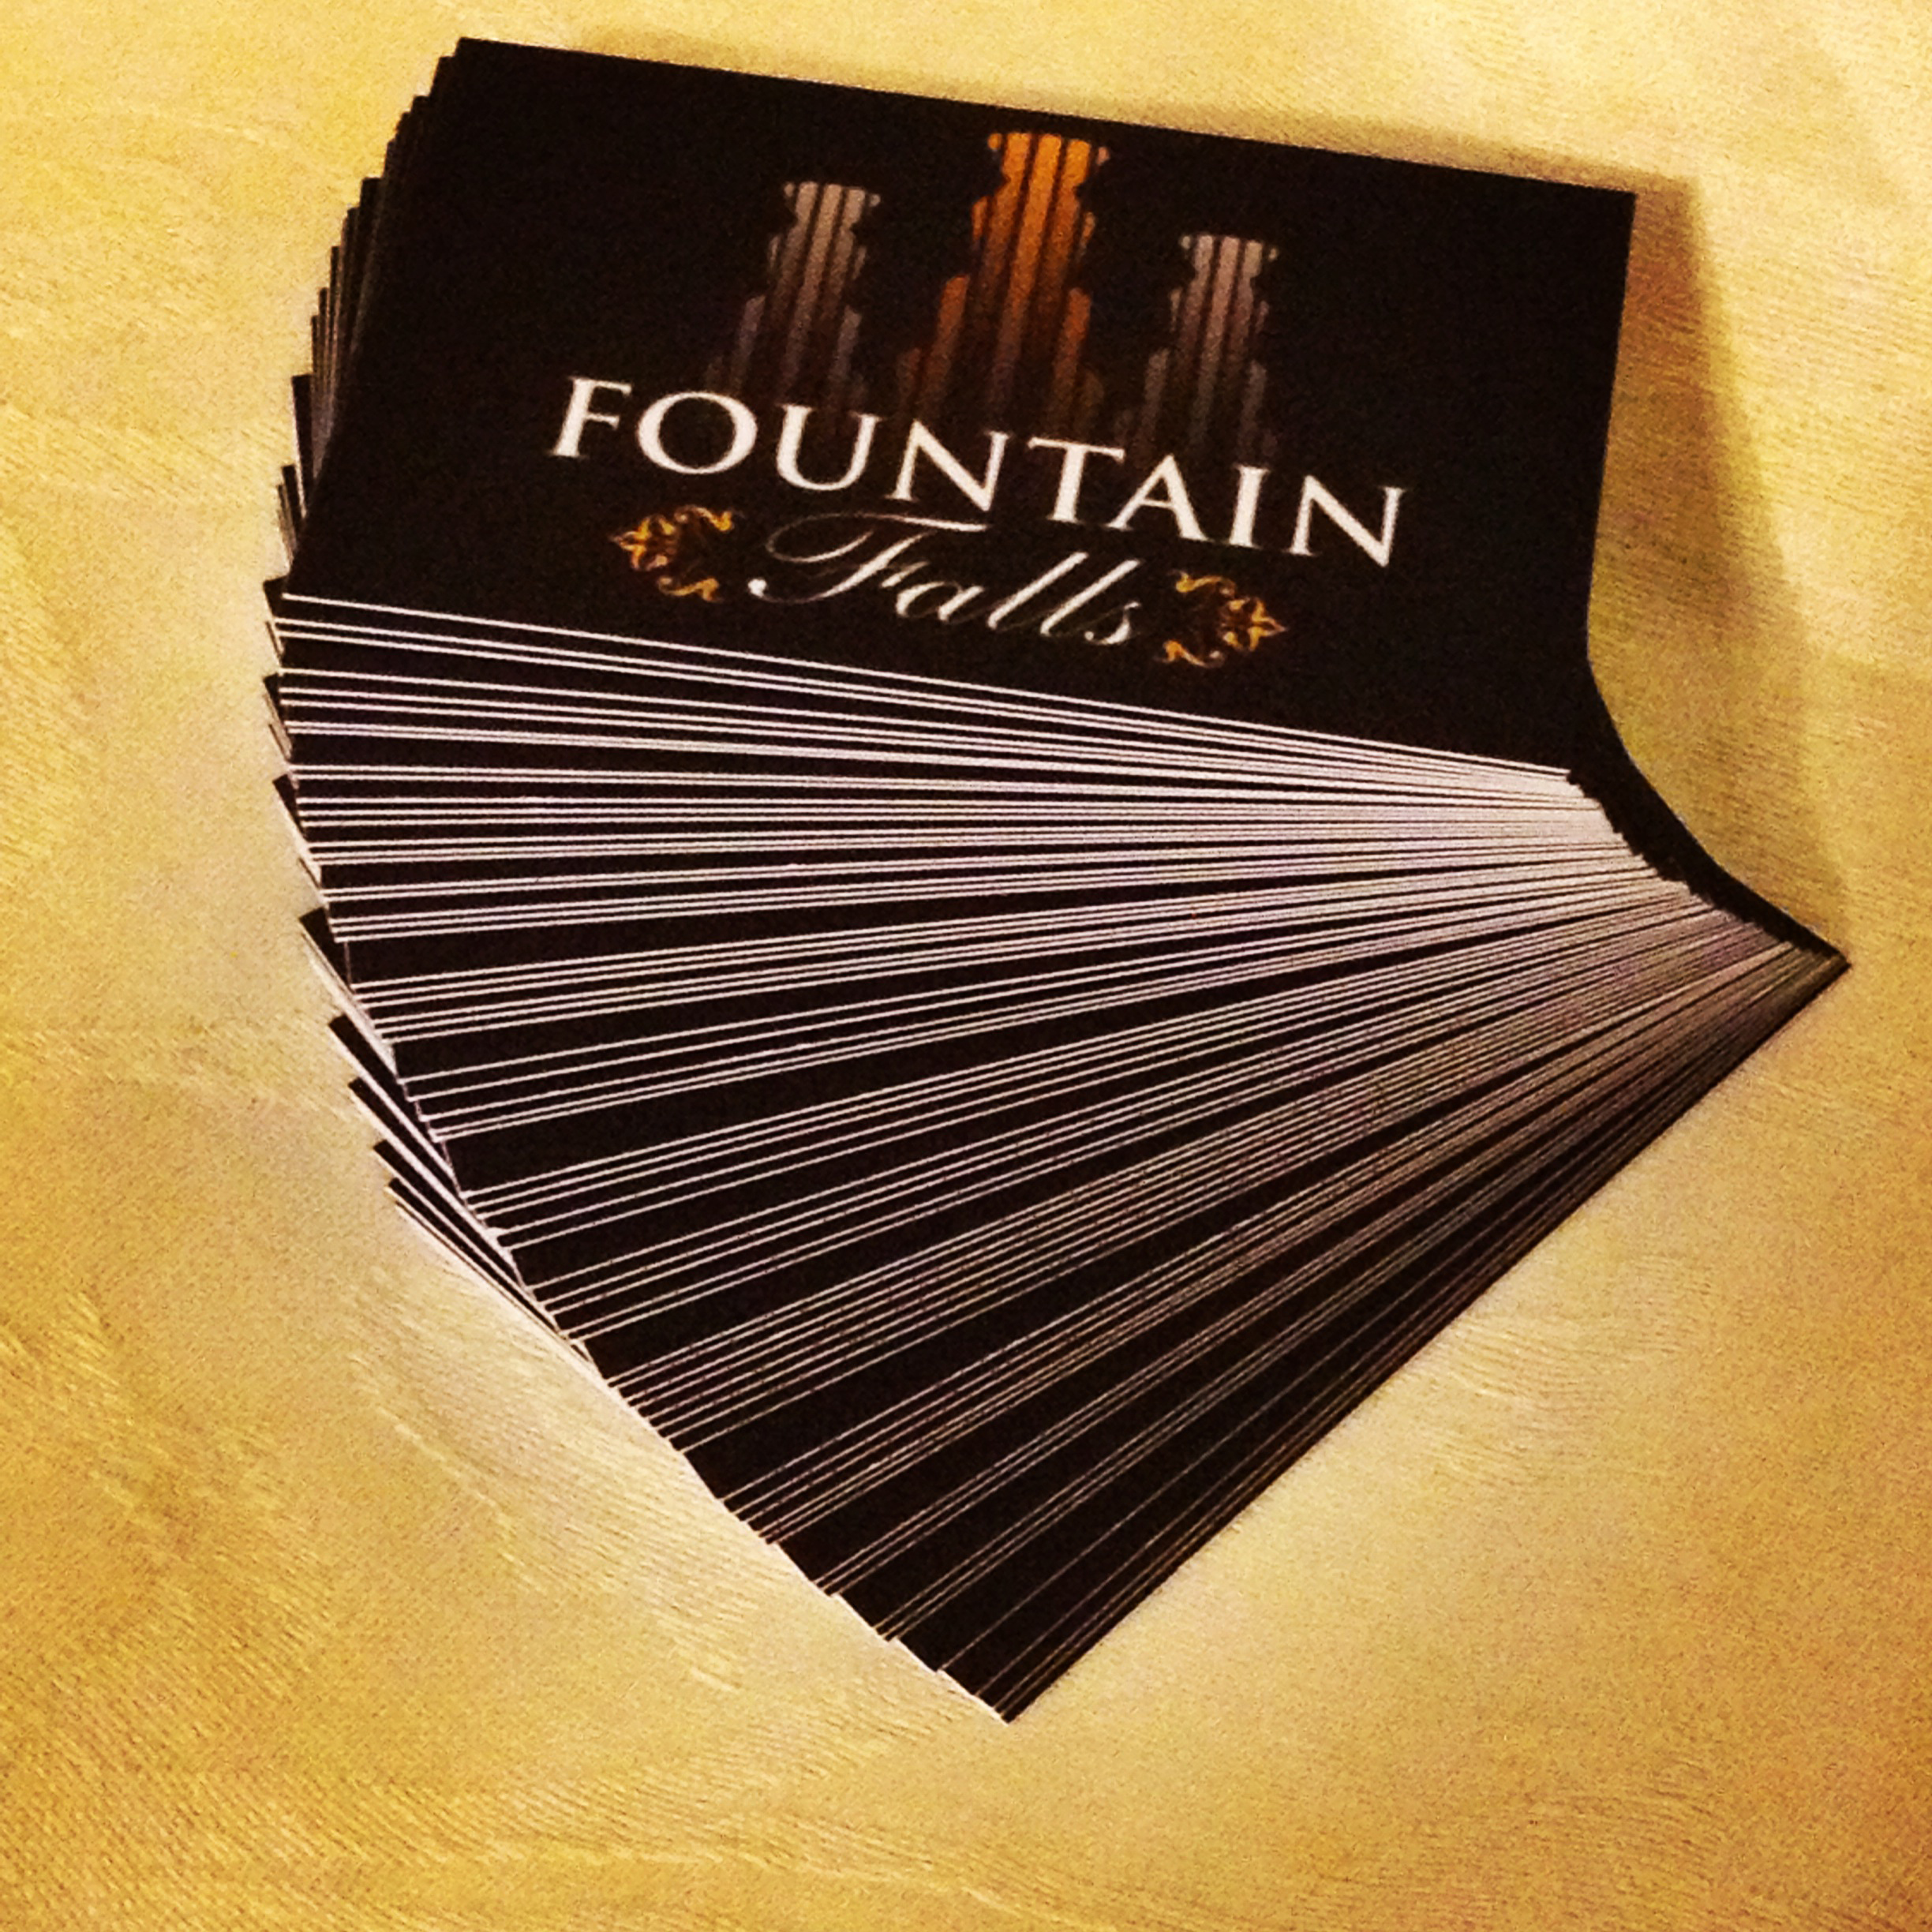 Business Card Design – Fountain Falls